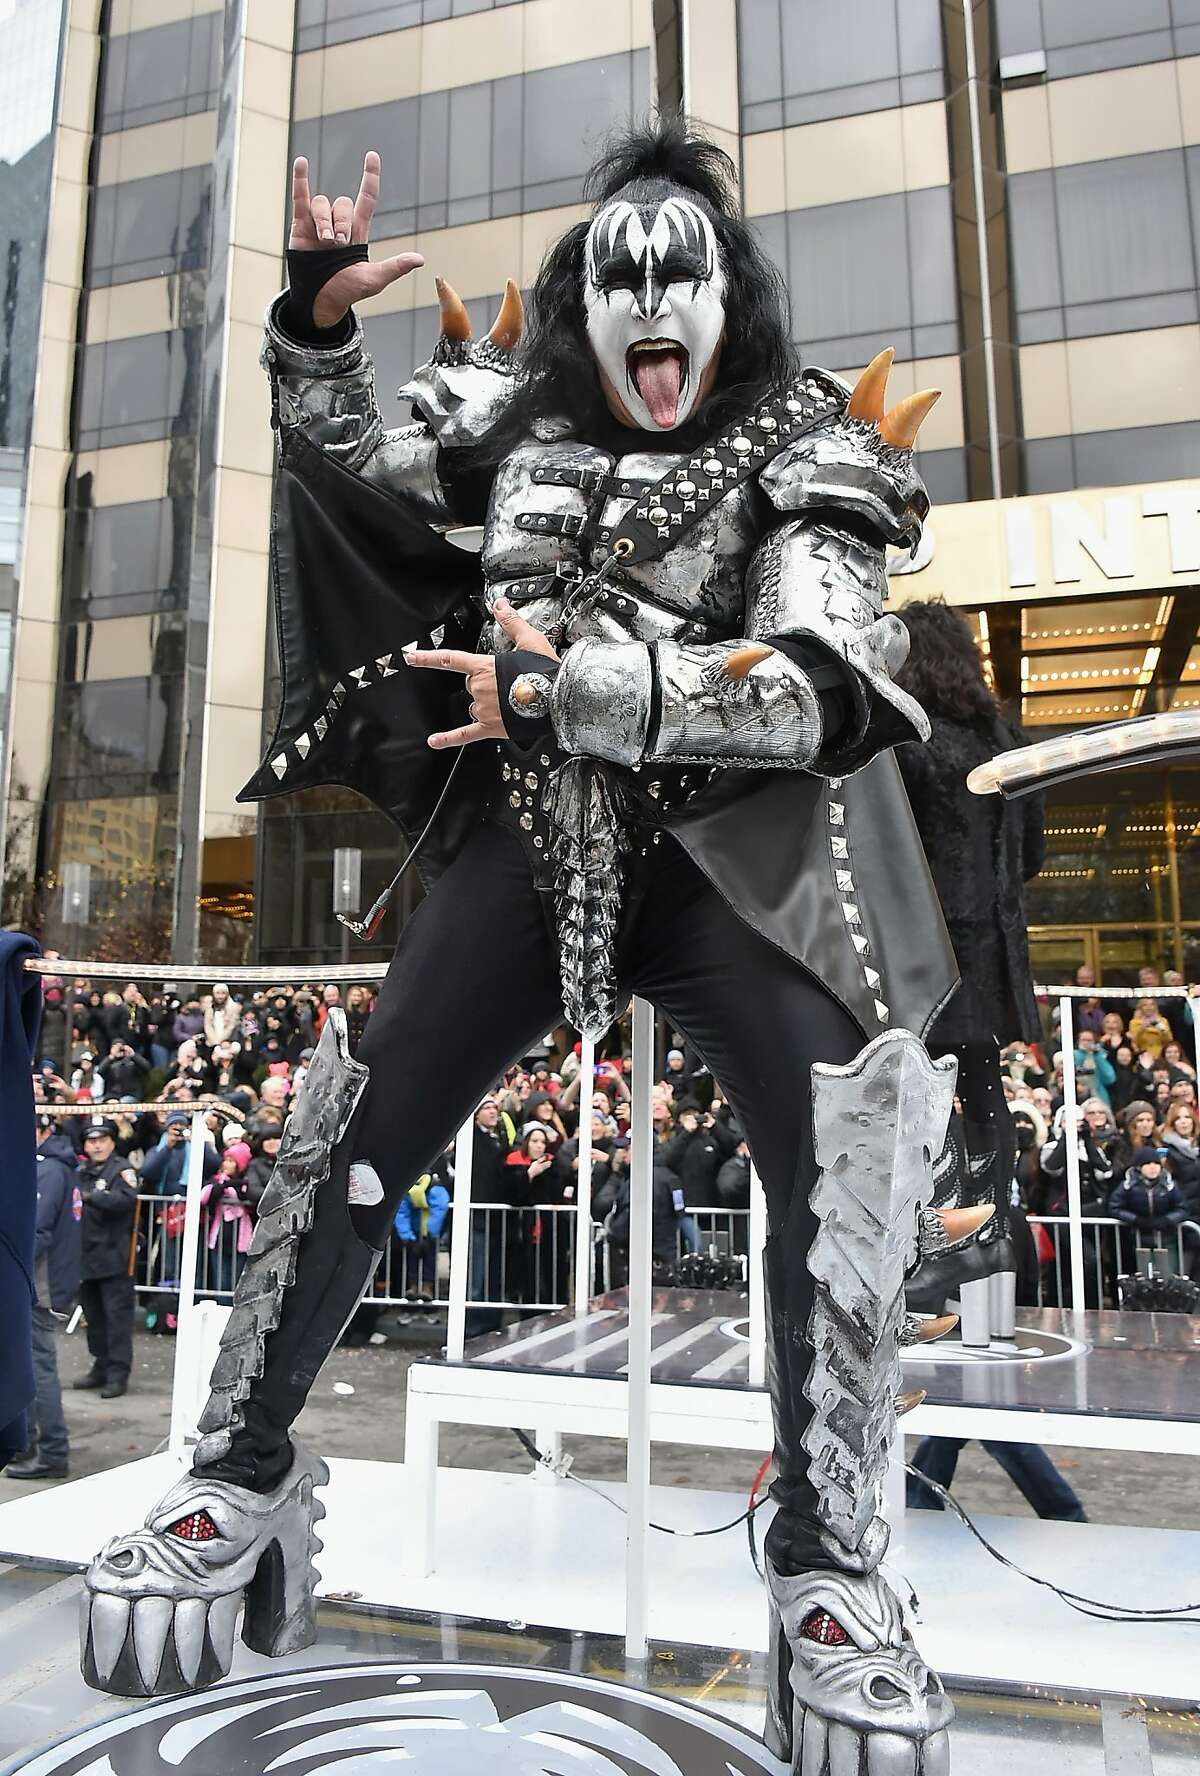 Gene Simmons of KISS during the 88th Annual Macy's Thanksgiving Day Parade on November 27, 2014 in New York City.